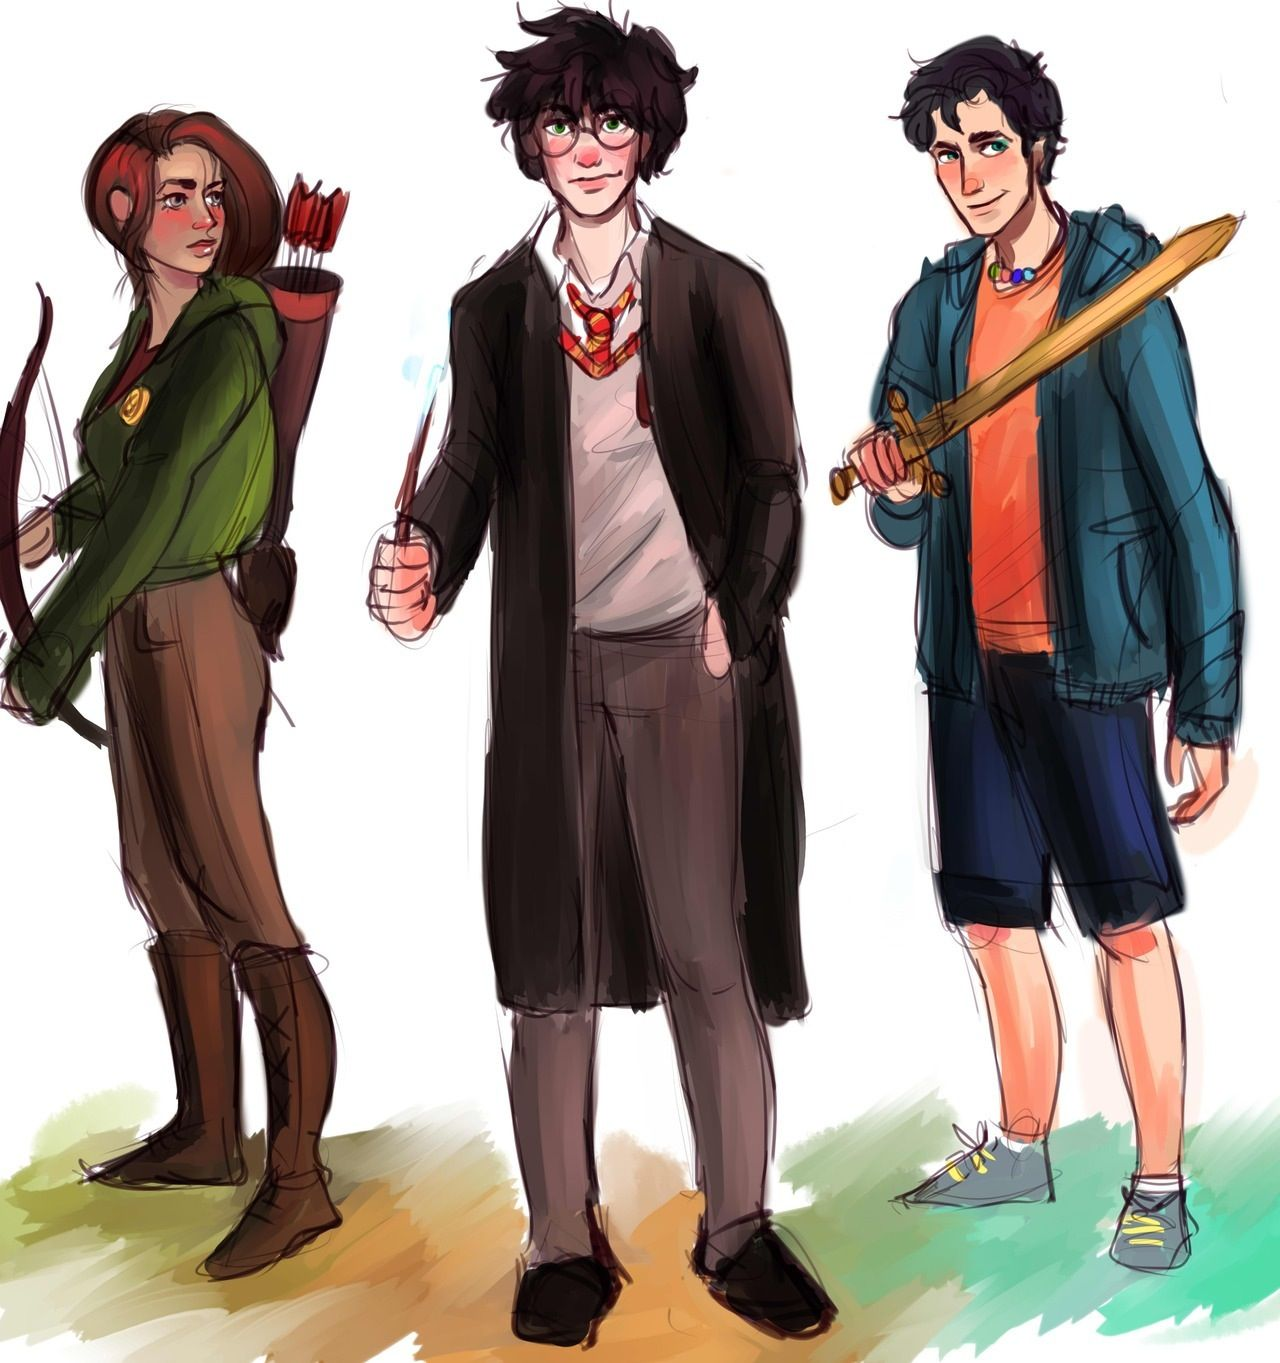 Percy Jackson, Harry potter, katniss everdeen  3 of my favorite books. Add in Tris and you're good.